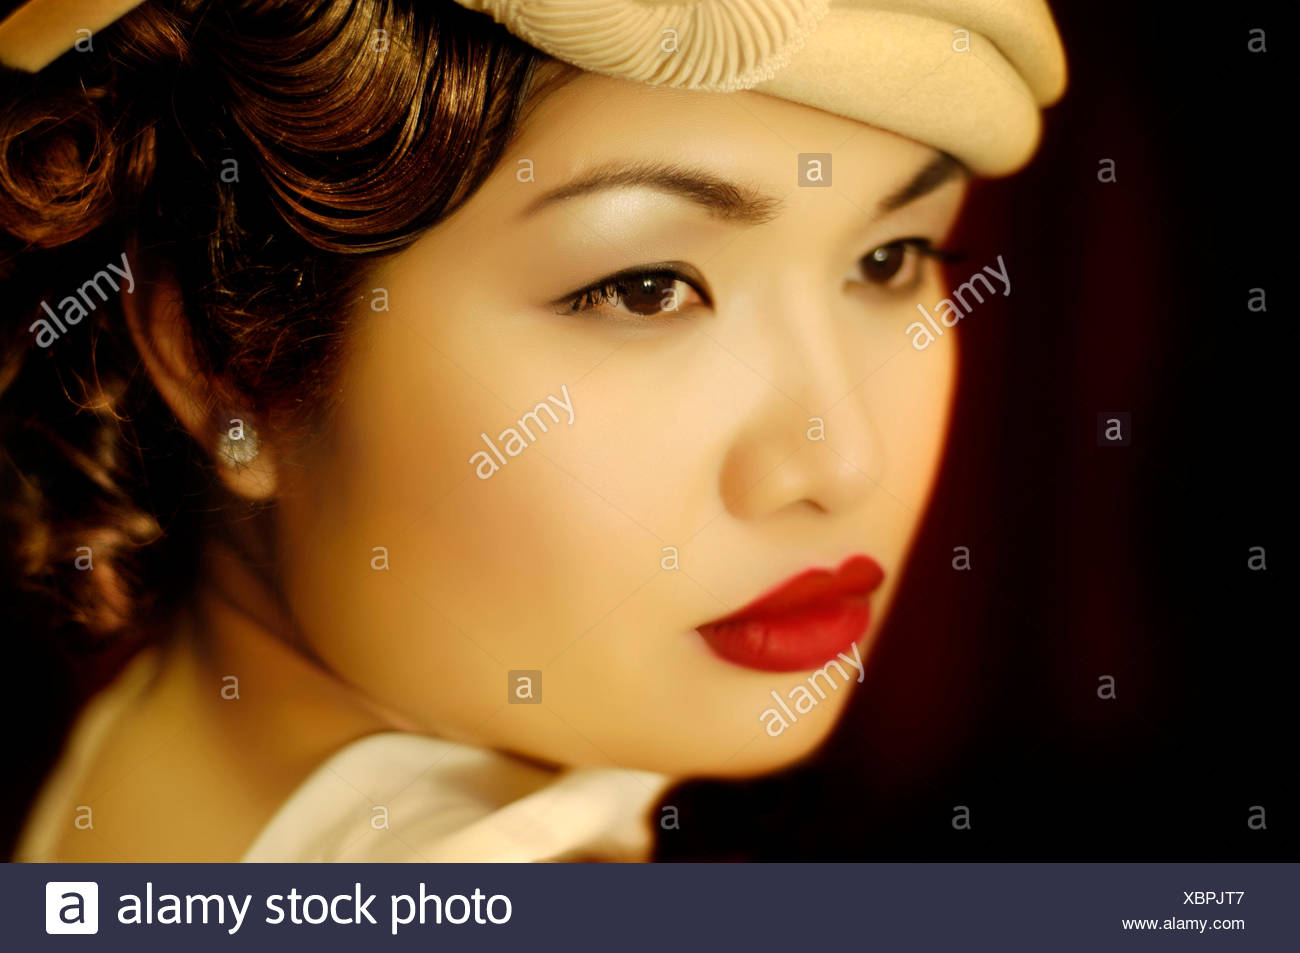 An Asian woman in her early twenties dressed in early 1940's attire, looks over her left shoulder. Her make-up is elegant and her lipstick is bright red. - Stock Image